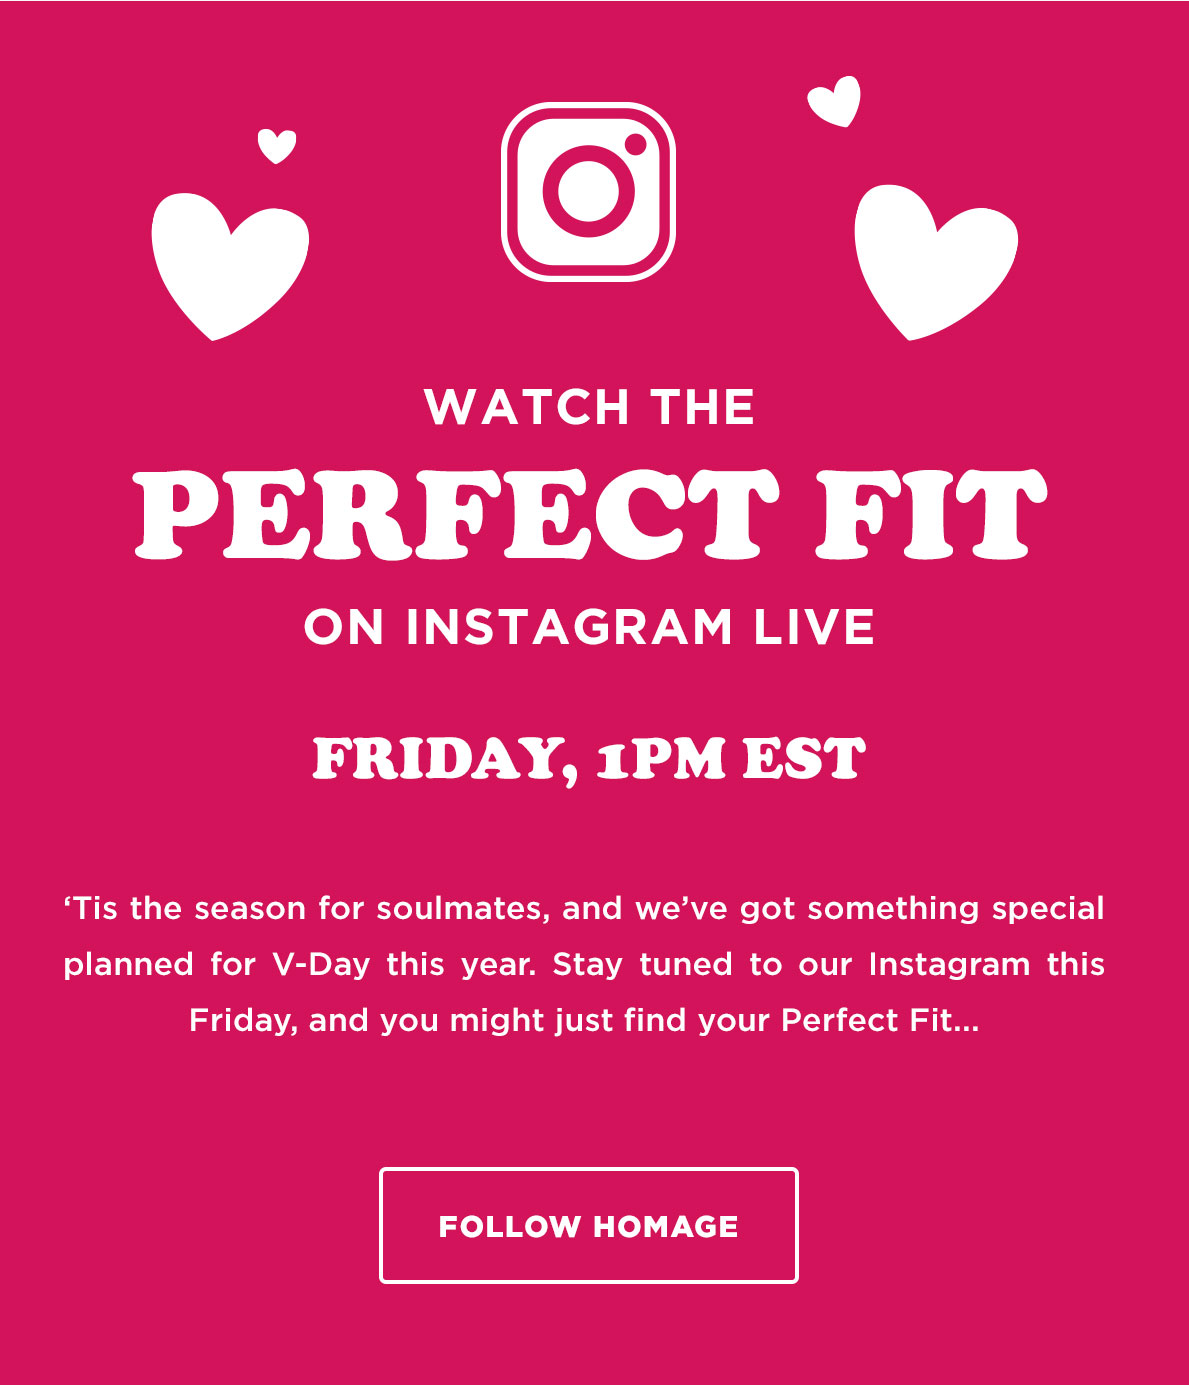 Watch the Perfect Fit on Instagram Live, Friday at 1pm Est.